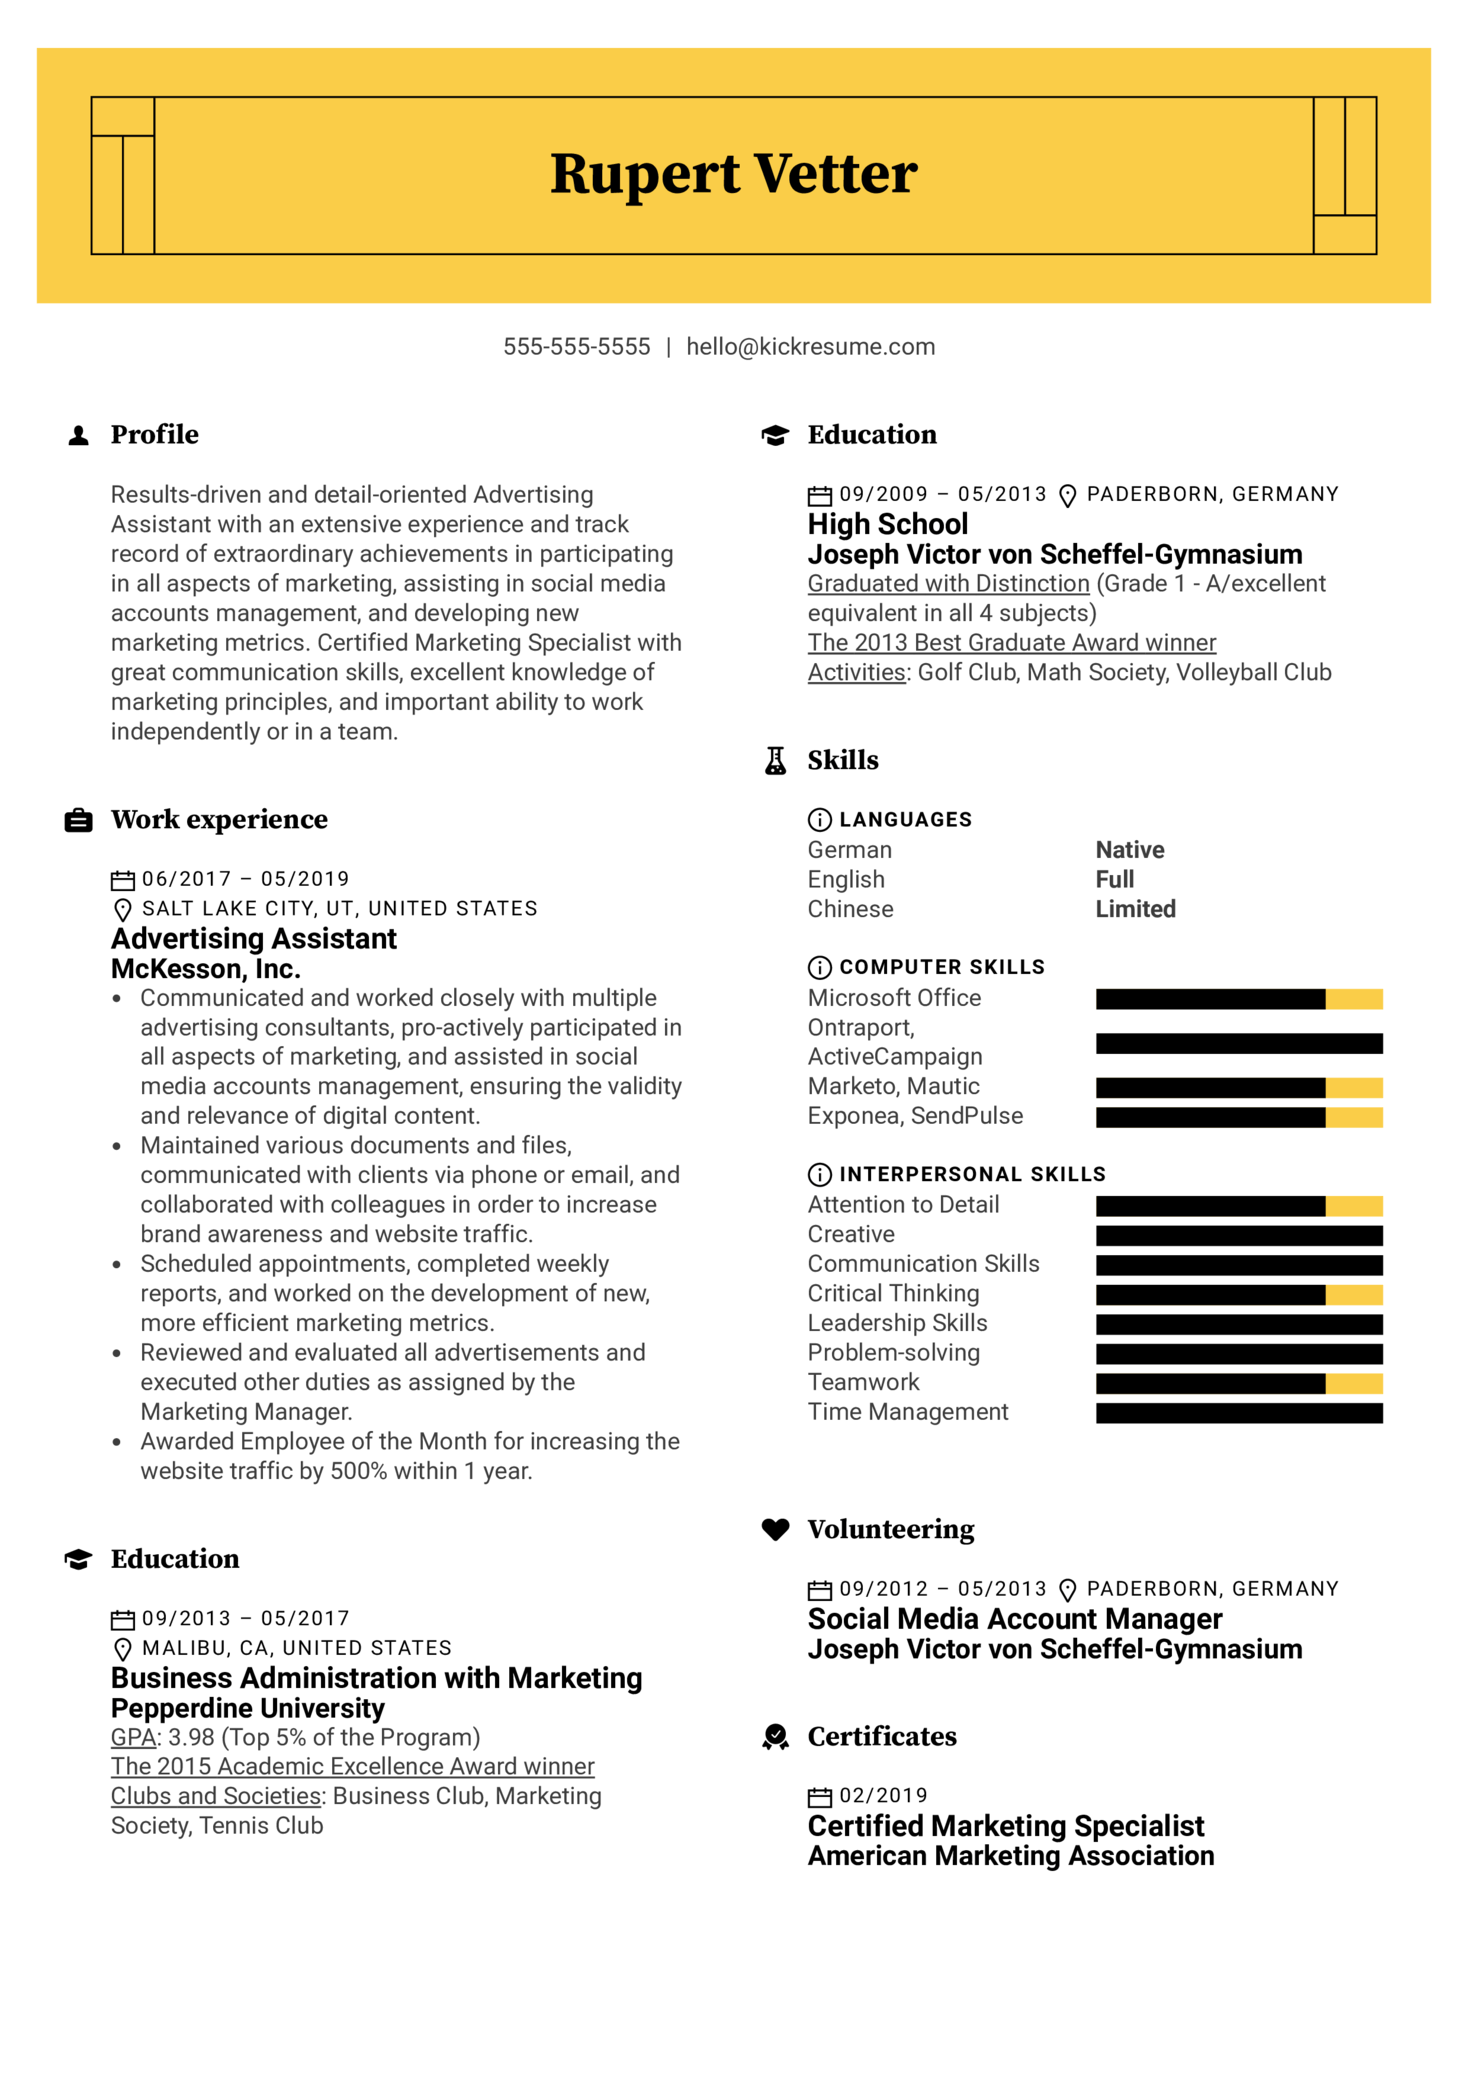 Advertising Assistant Resume Sample (Part 1)